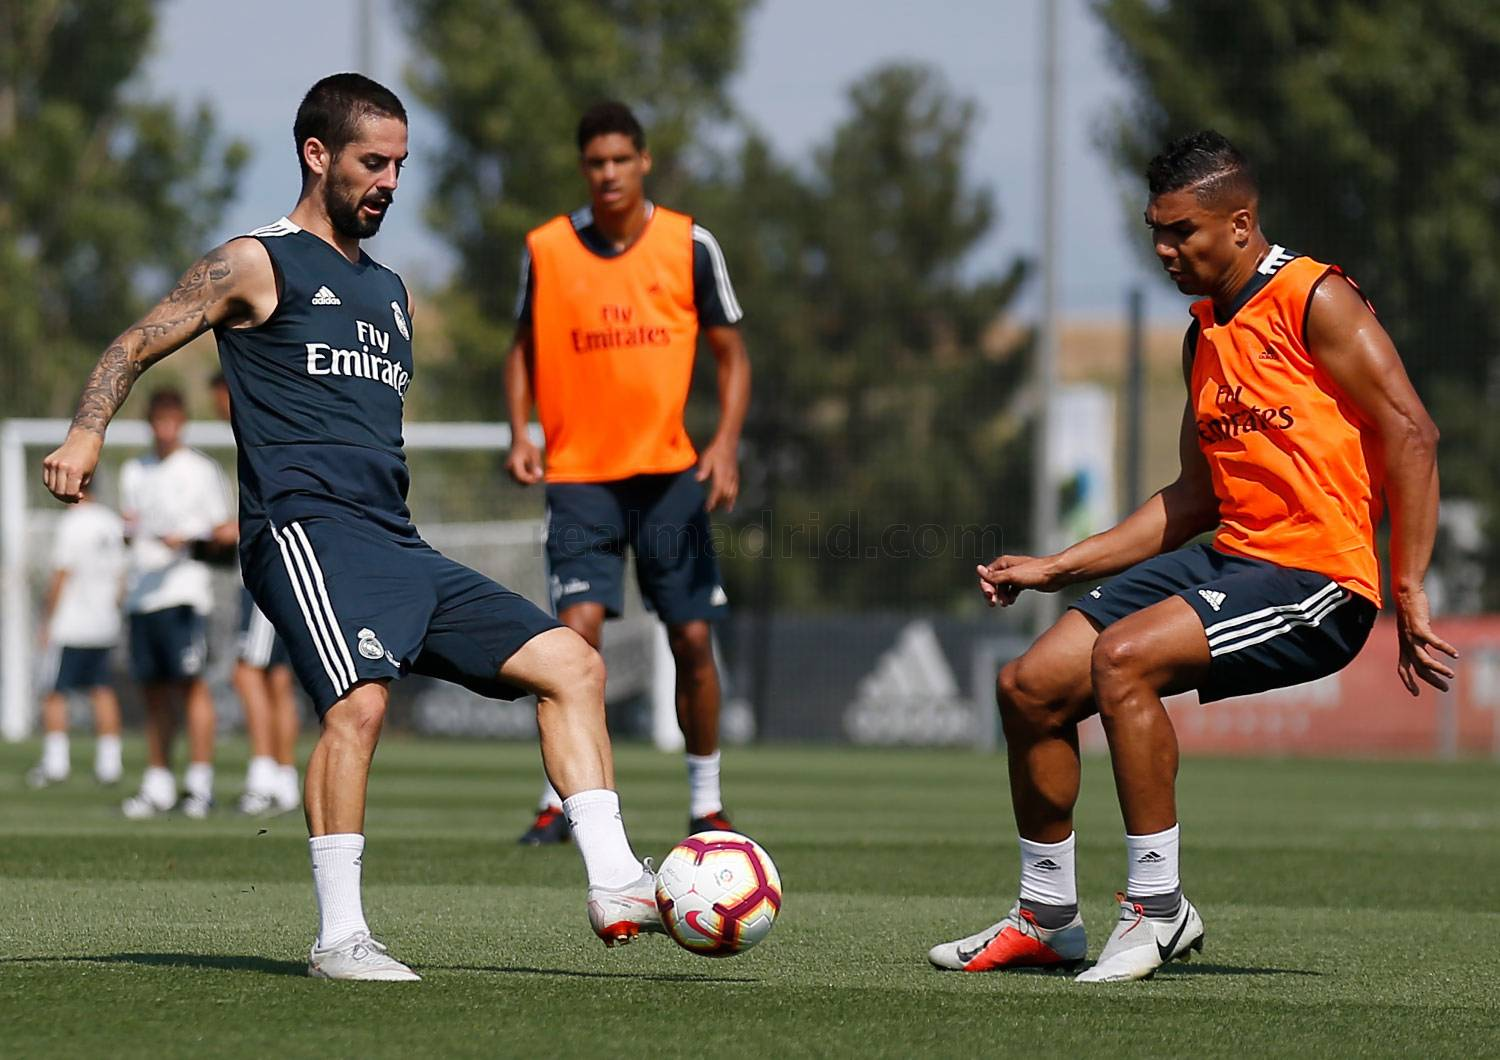 Real Madrid - Entrenamiento del Real Madrid - 18-08-2018